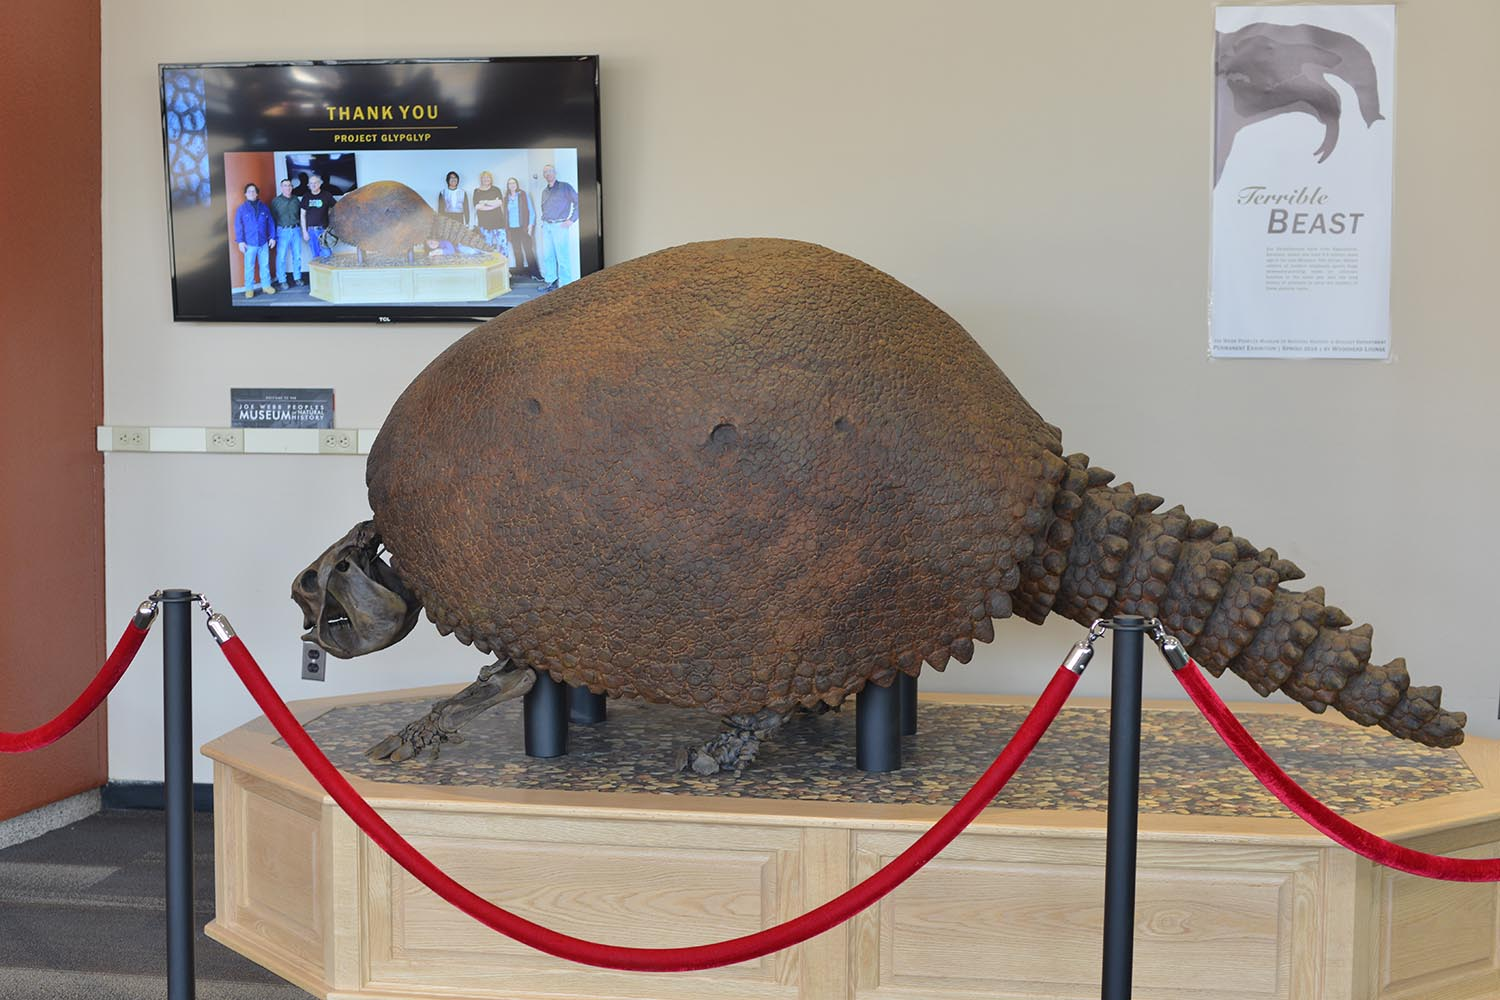 The Deinotherium joins Shelley the Glyptodon inside Exley Science Center. This 8-foot-long fossil cast of an armadillo-like animal also was found in the Exley penthouse and was installed in February 2018. Read more about Shelley in this past Wesleyan Connection article. (Photos by Olivia Drake)